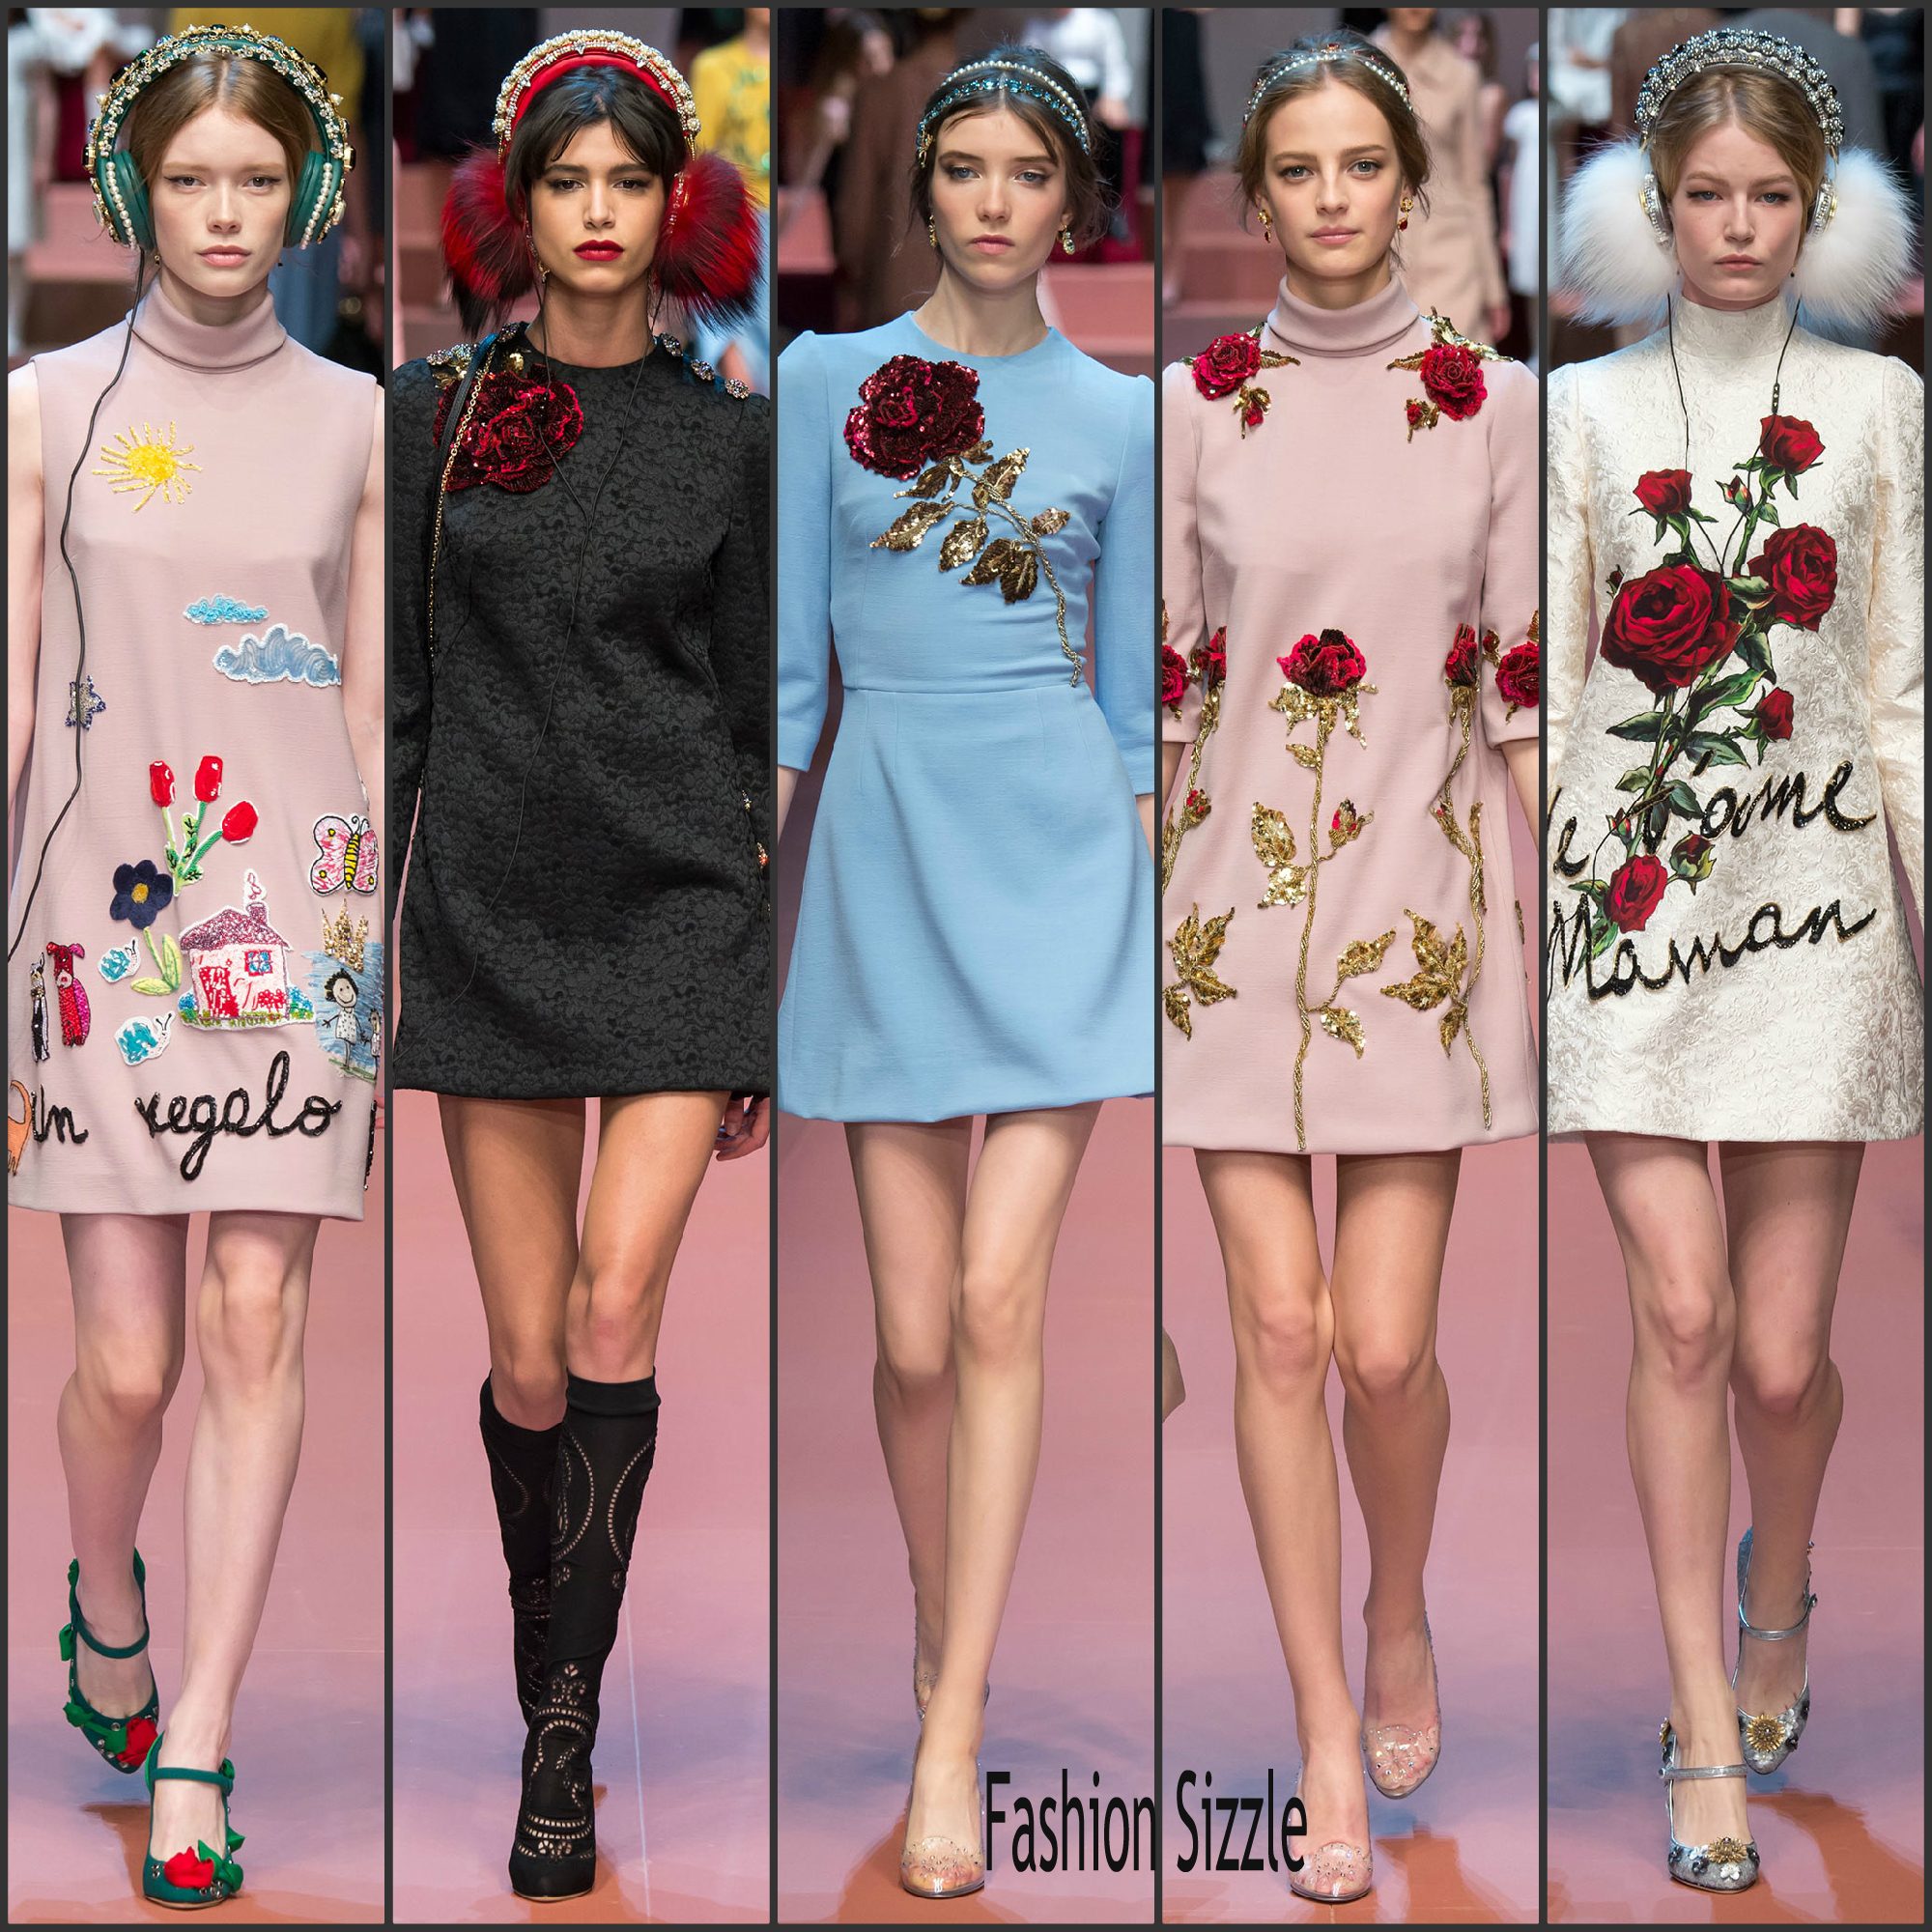 fall-trends-2015-60s-hippie-and-mod-fashion